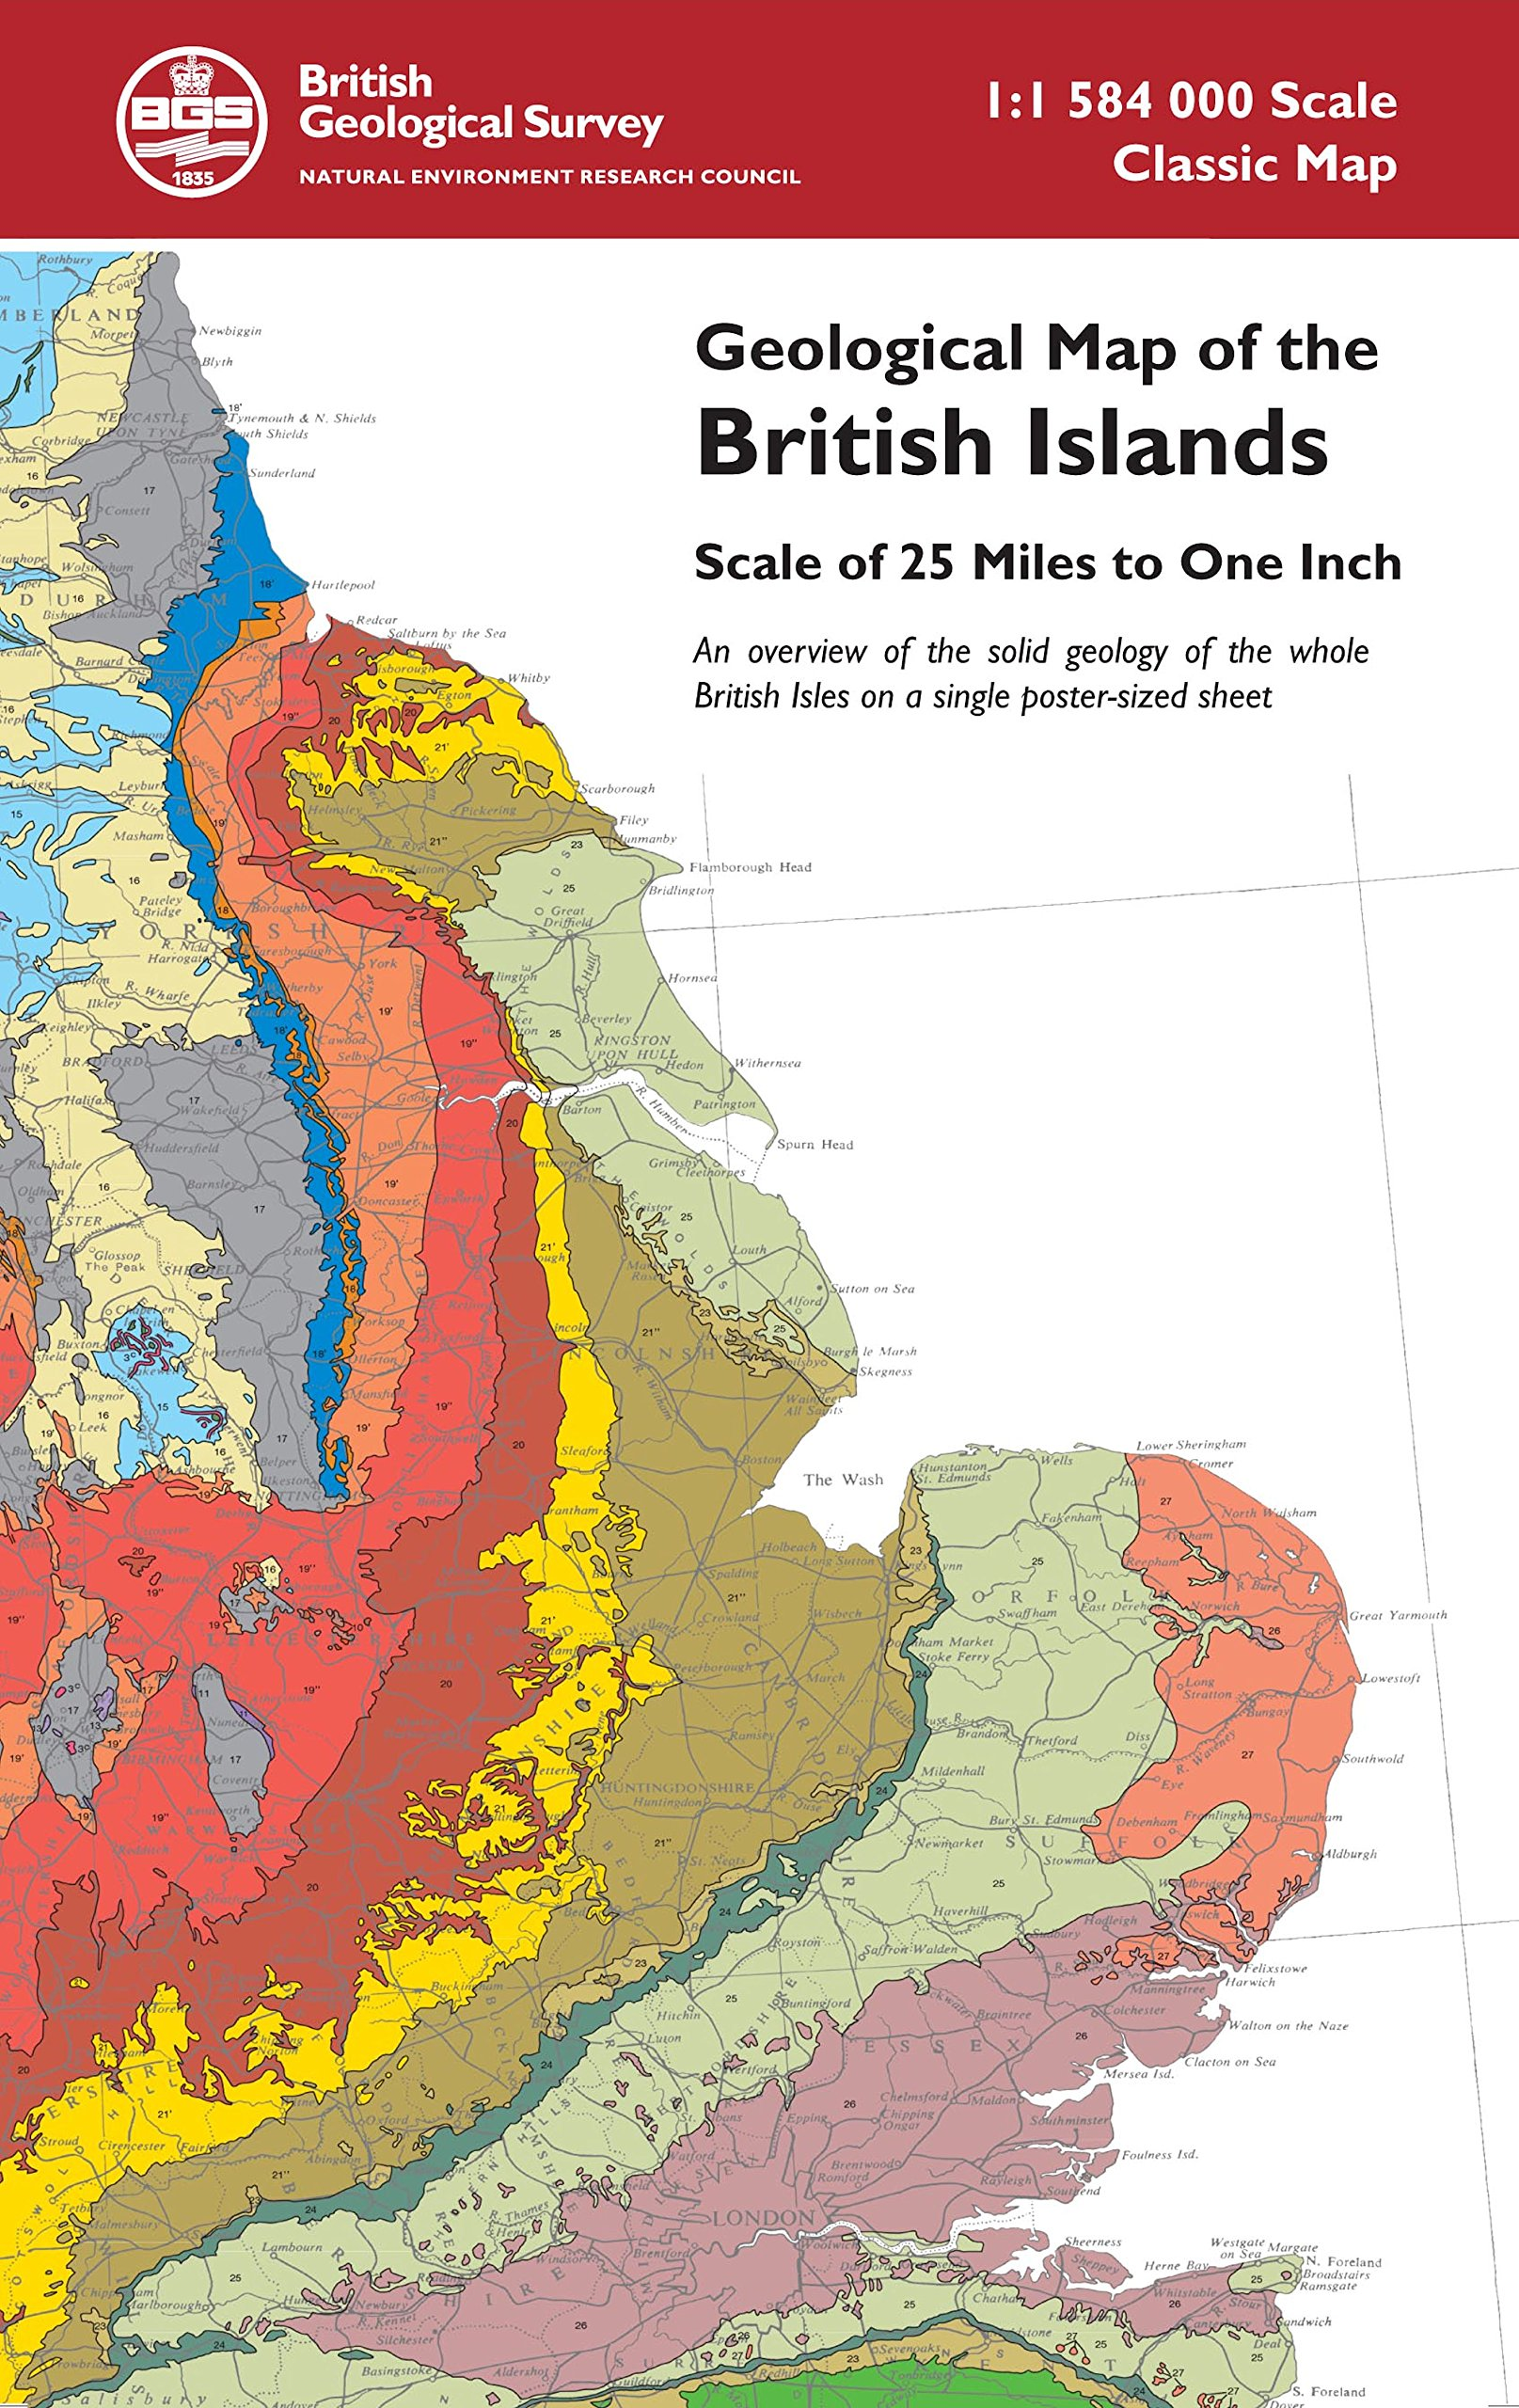 Geological Map of the British Islands  An overview of the bedrock